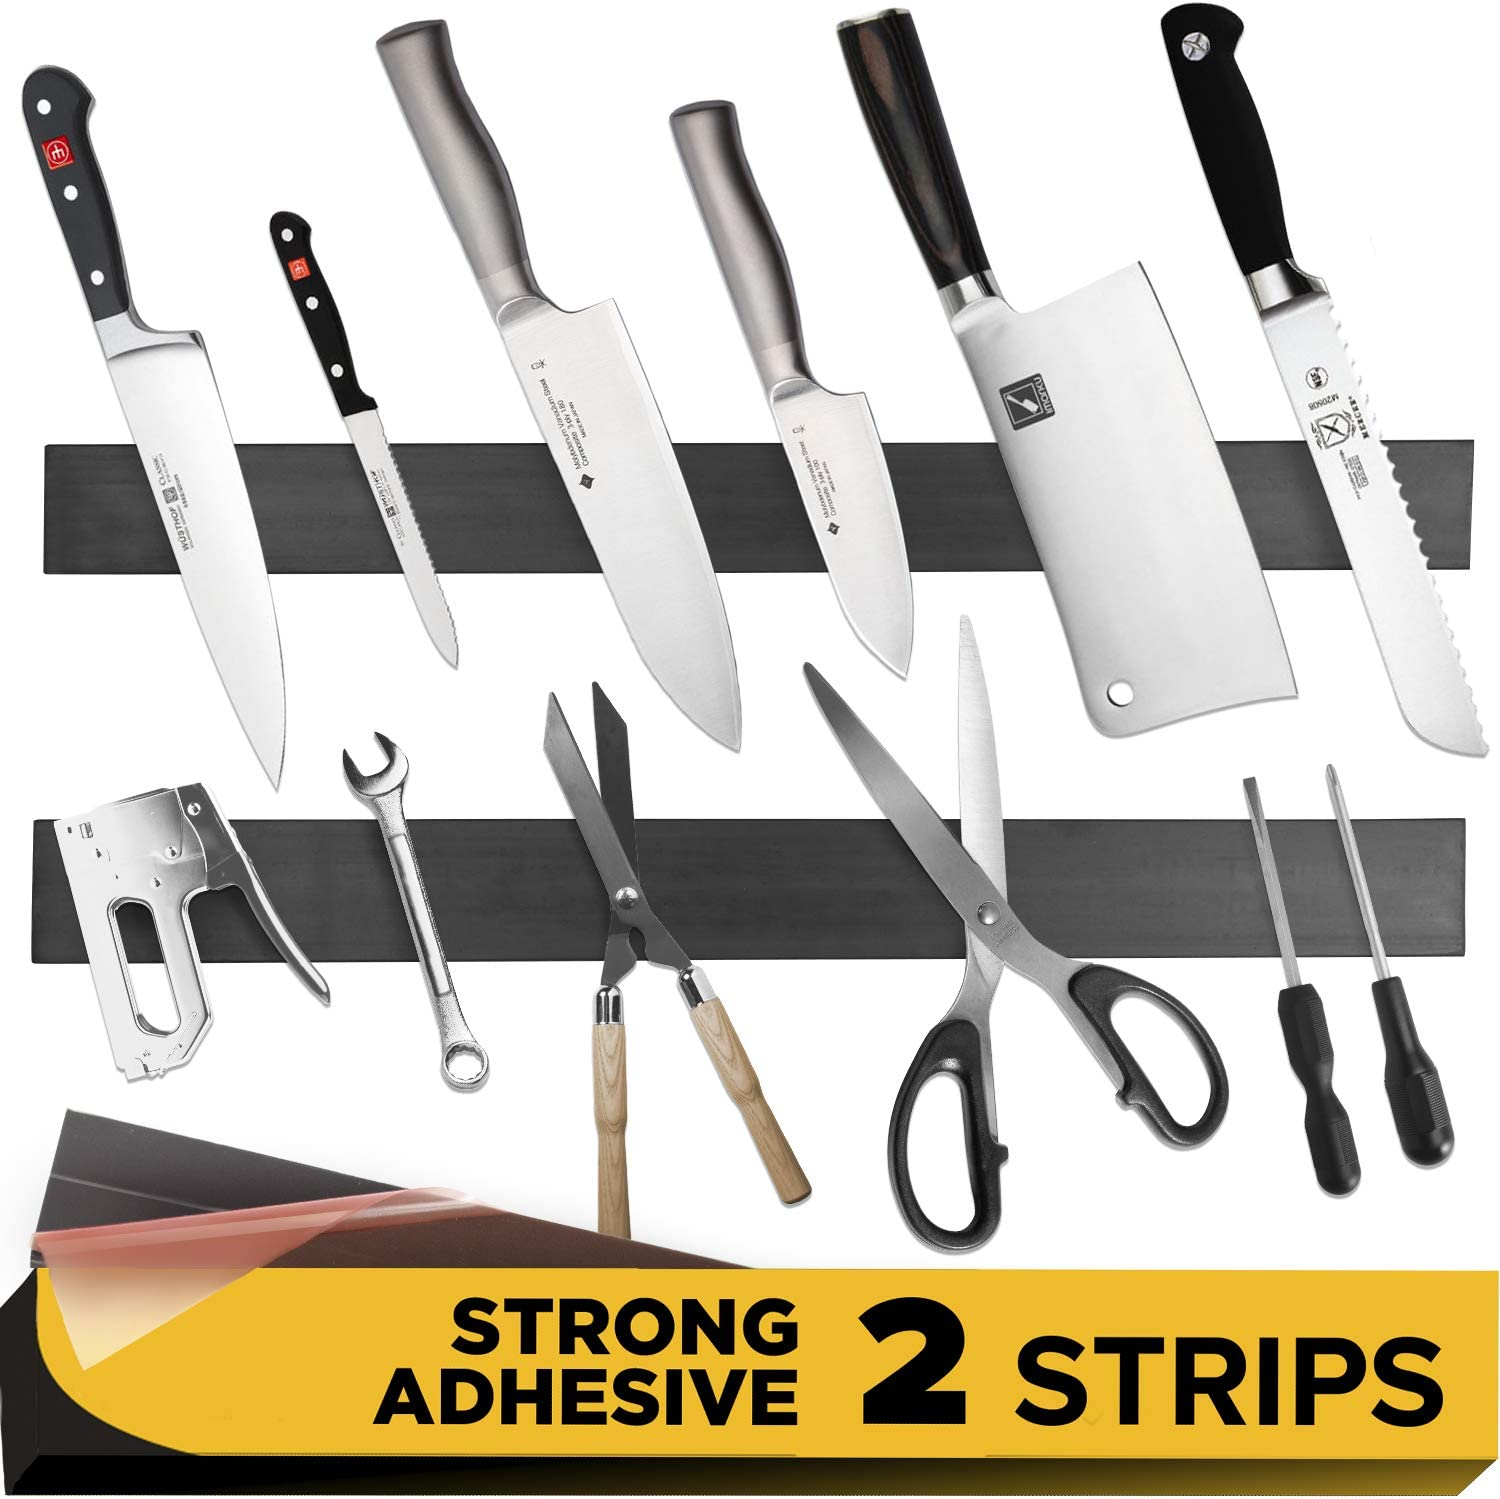 Buy Adhesive Magnetic Strip For Knives Kitchen With Multipurpose Use As Knife Holder Knife Rack Knife Magnetic Strip Knives Bar Kitchen Utensil Holder Tool Holder For Garage And Kitchen Organizer Online In